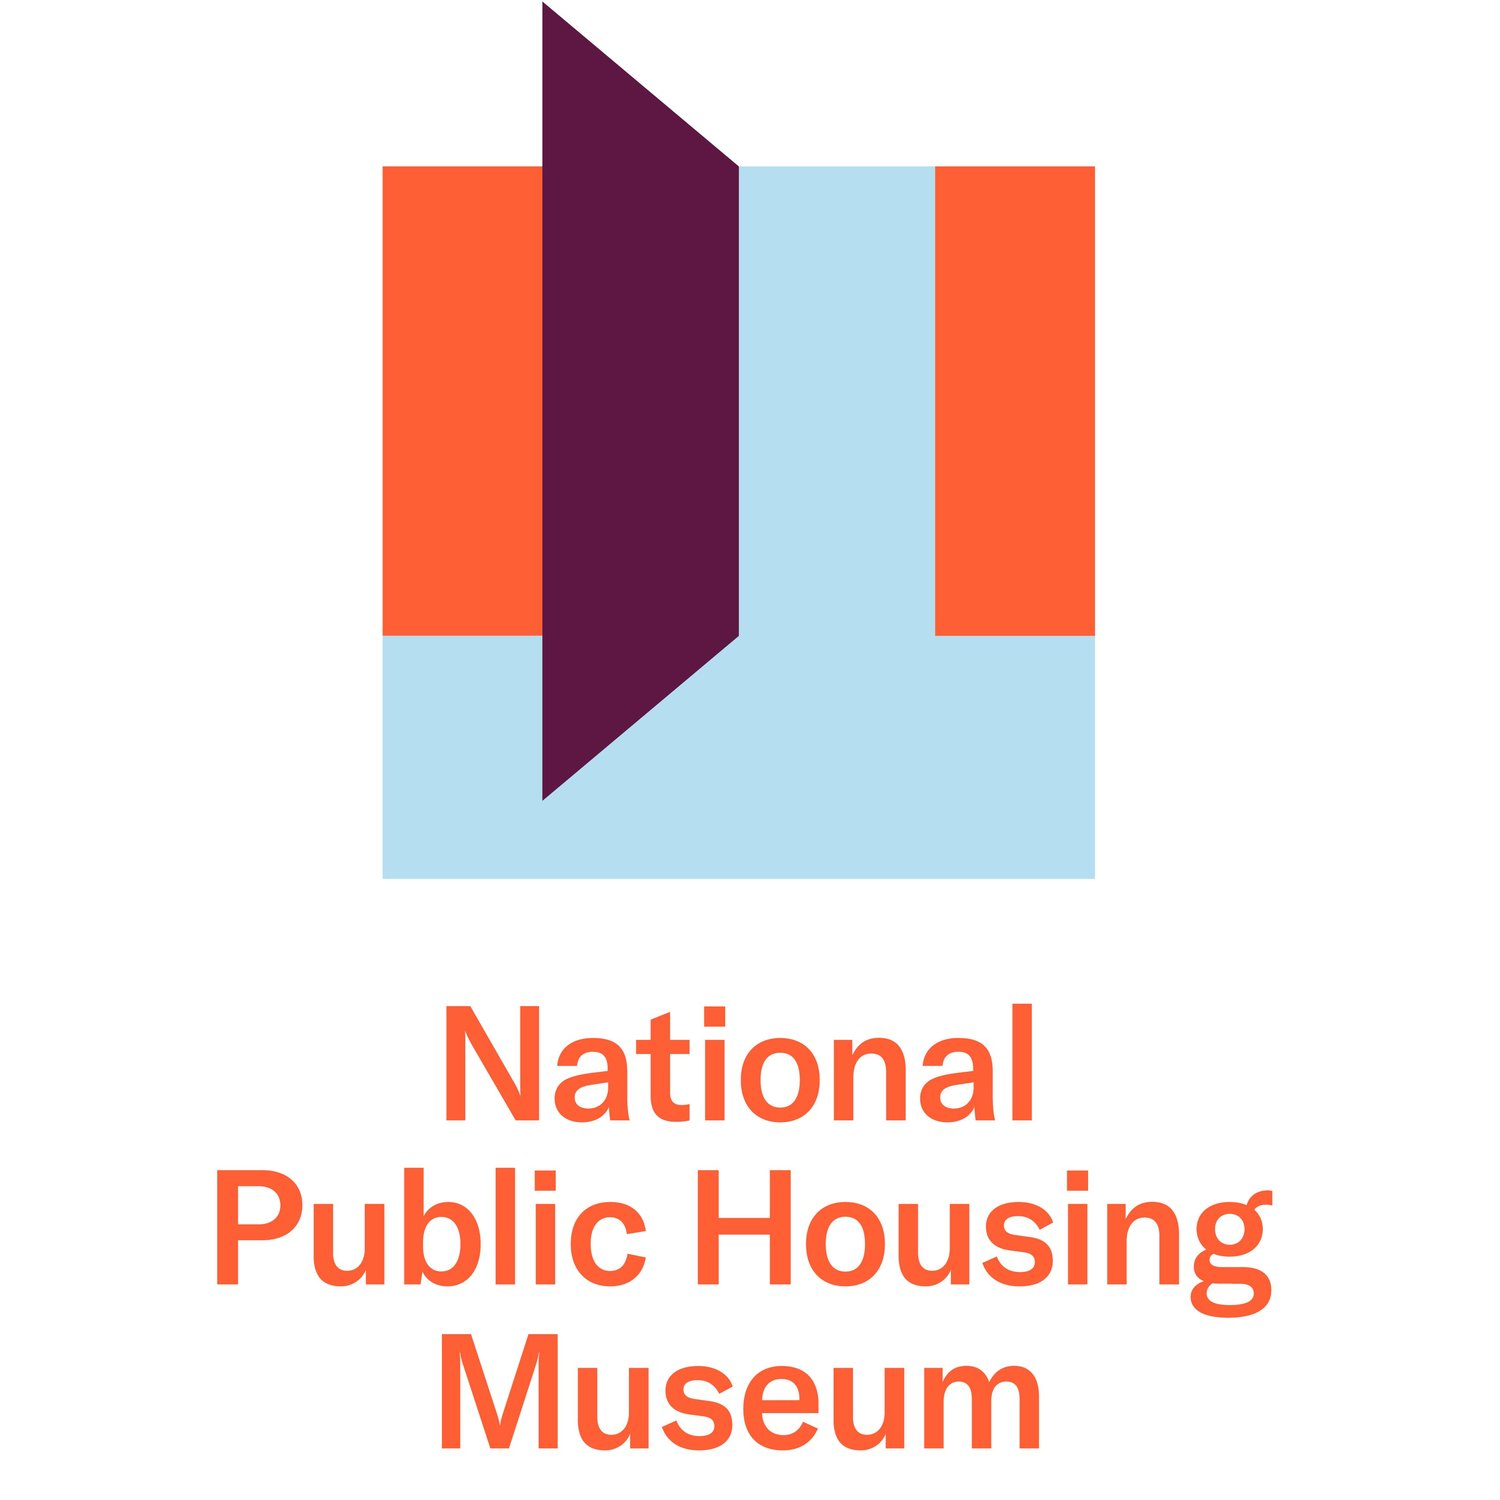 National Public Housing Museum